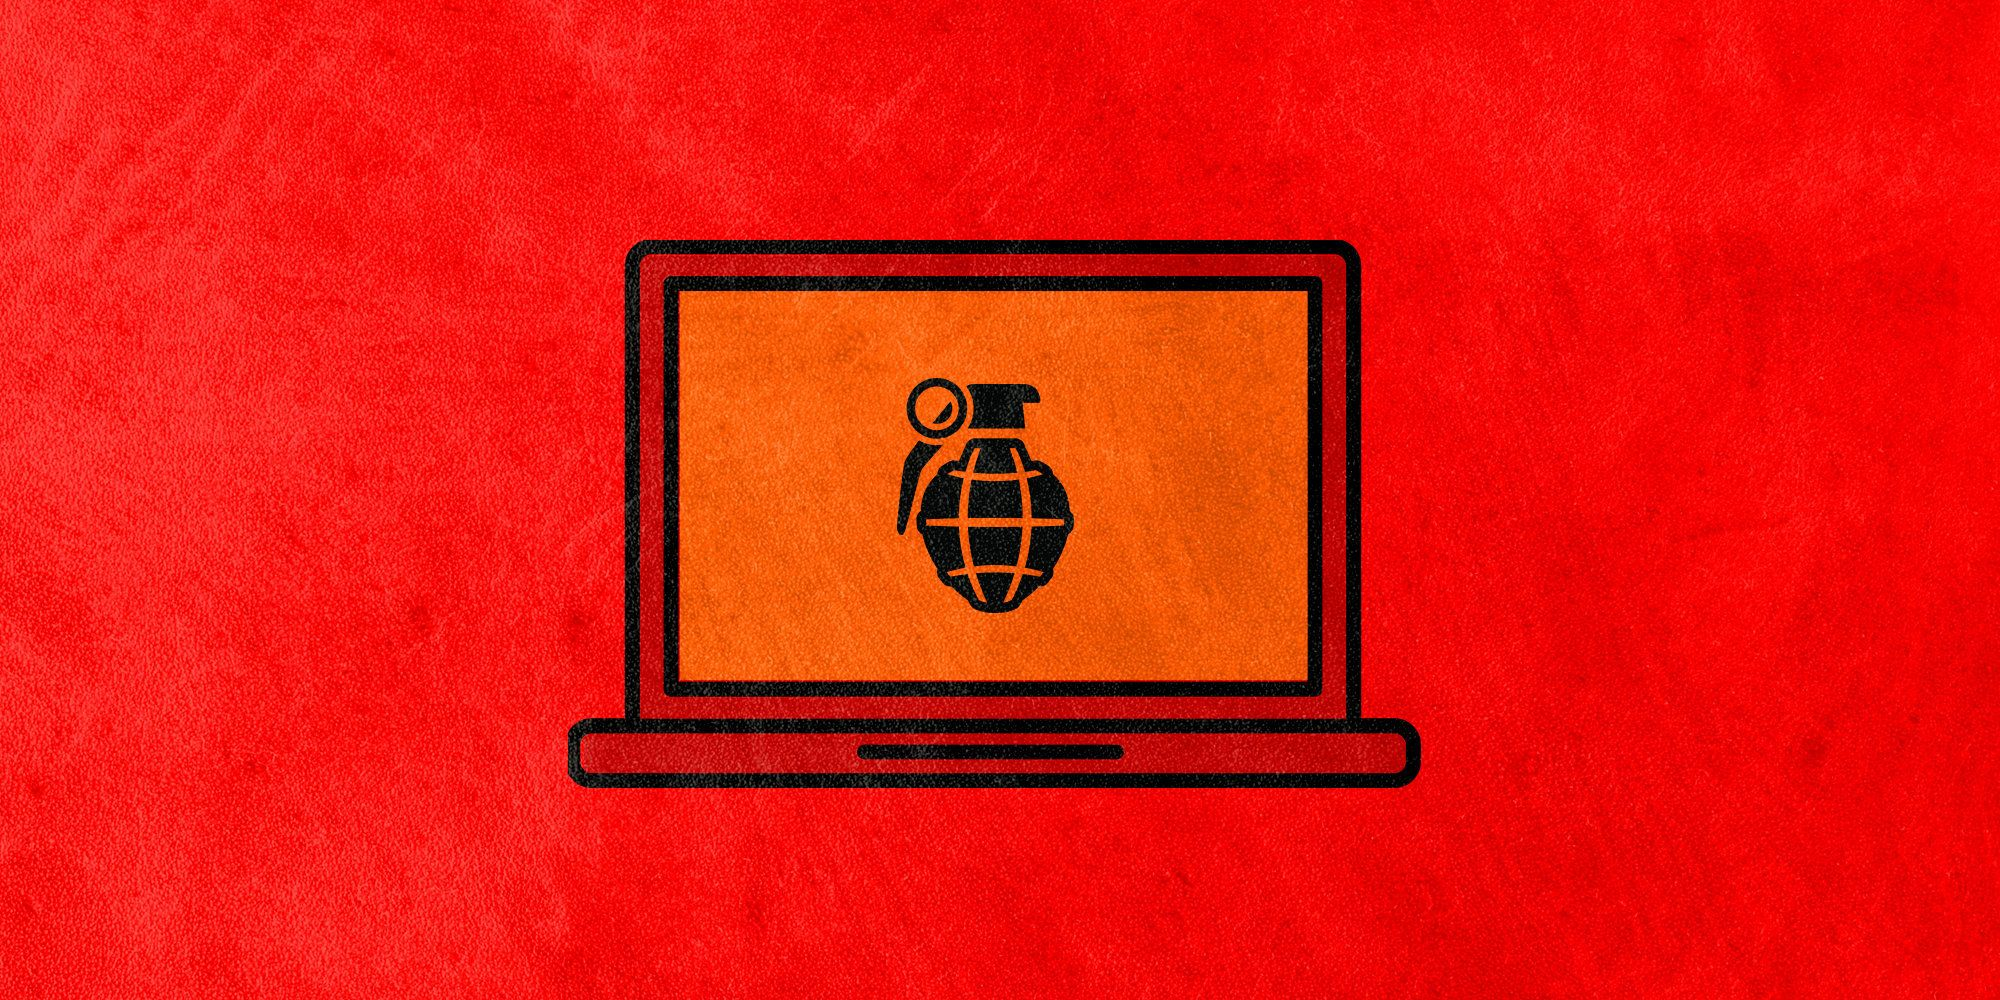 U.S. Tech Giant Cloudflare Provides Cybersecurity For At Least 7 Terror Groups